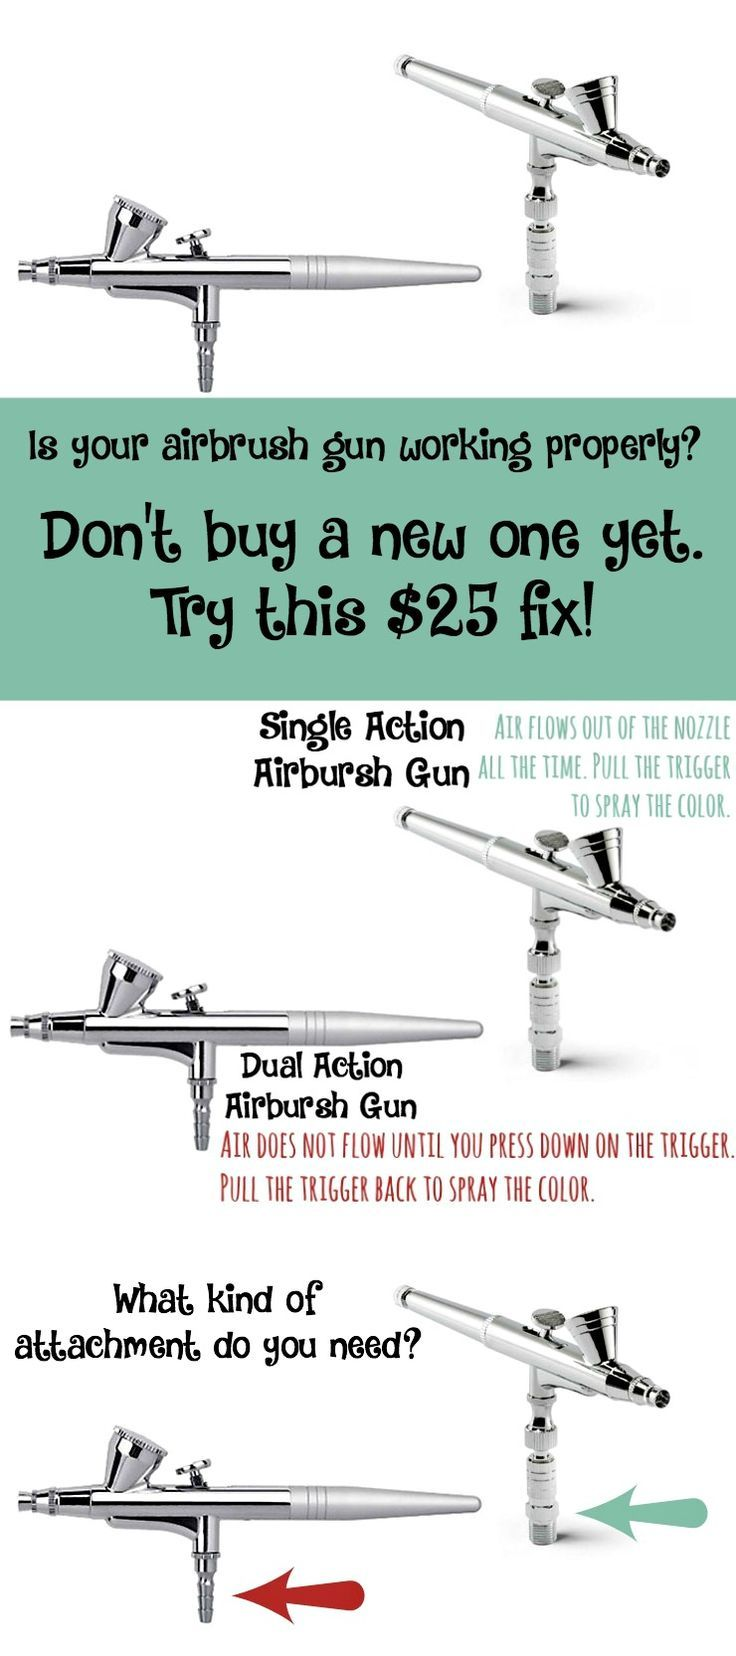 Don't buy a New Airbrush System-Try an Airbrush Gun Replacement | The Bearfoot Baker